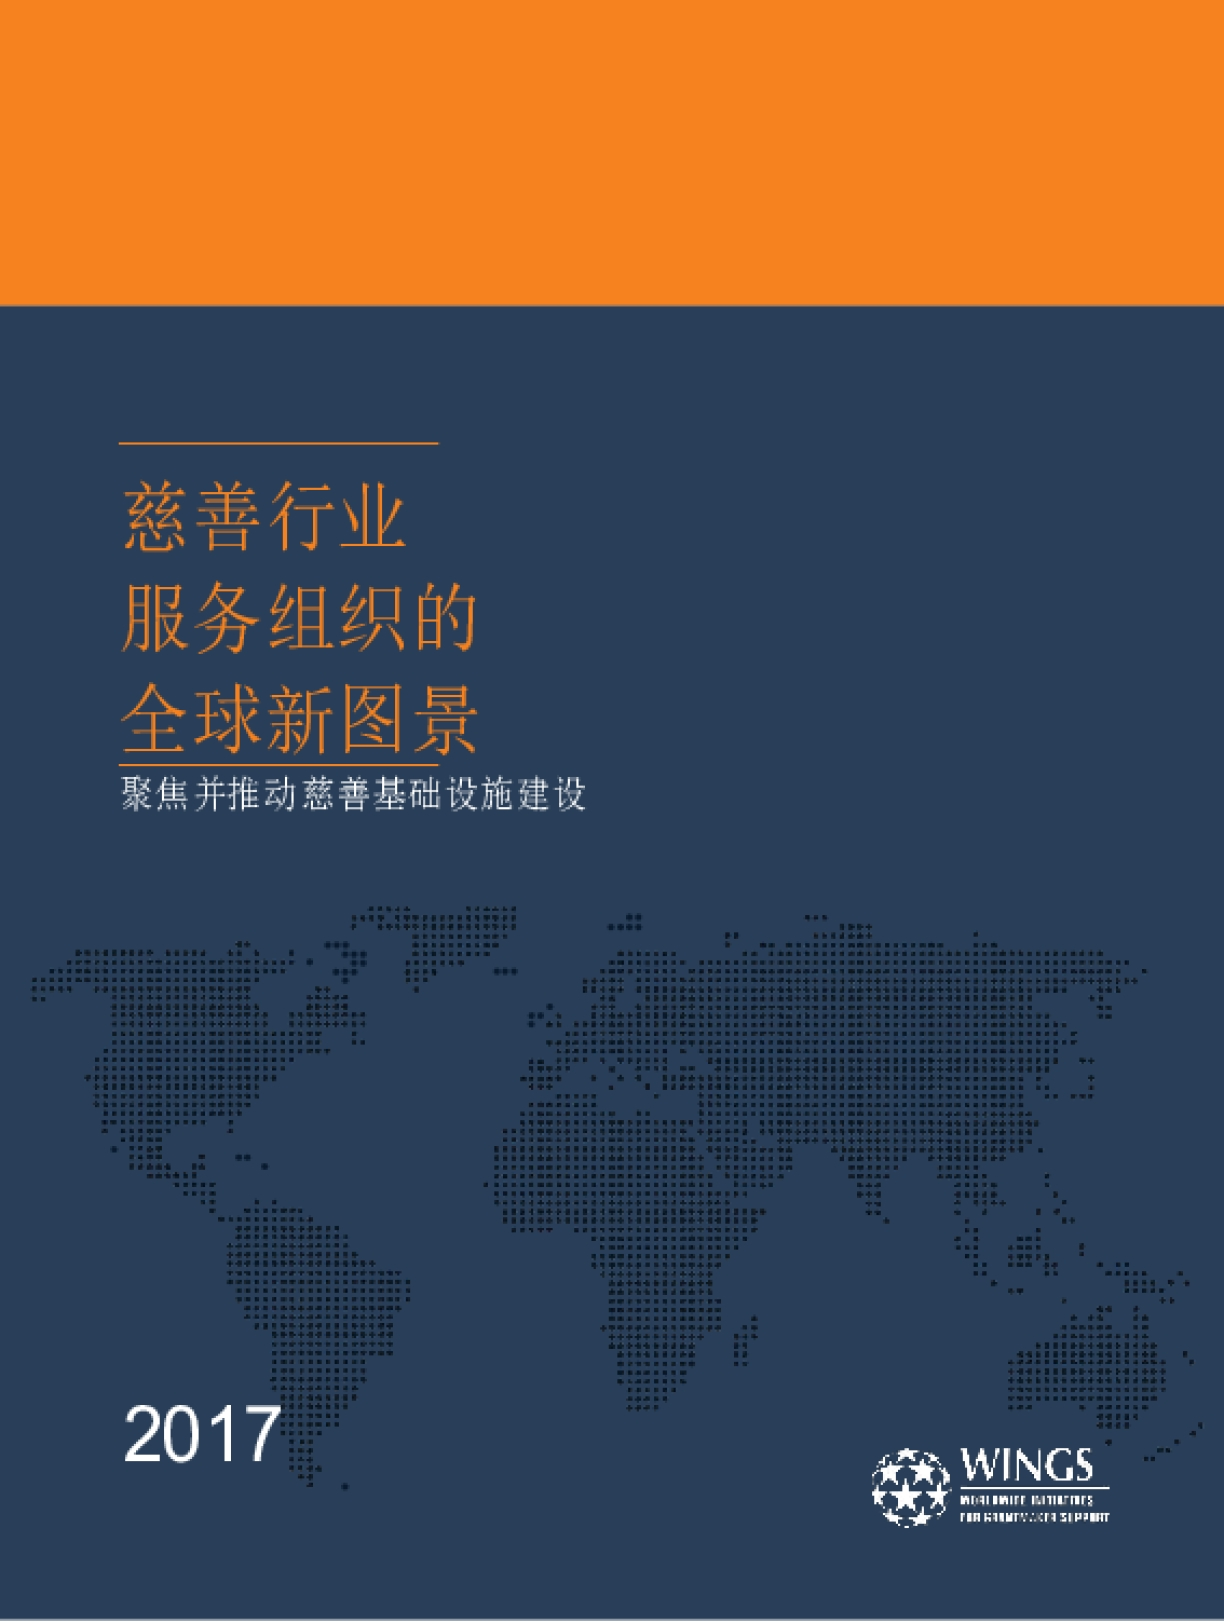 Infrastructure in Focus: A New Global Picture of Organizations Serving Philanthropy - Mandarin Chinese Version